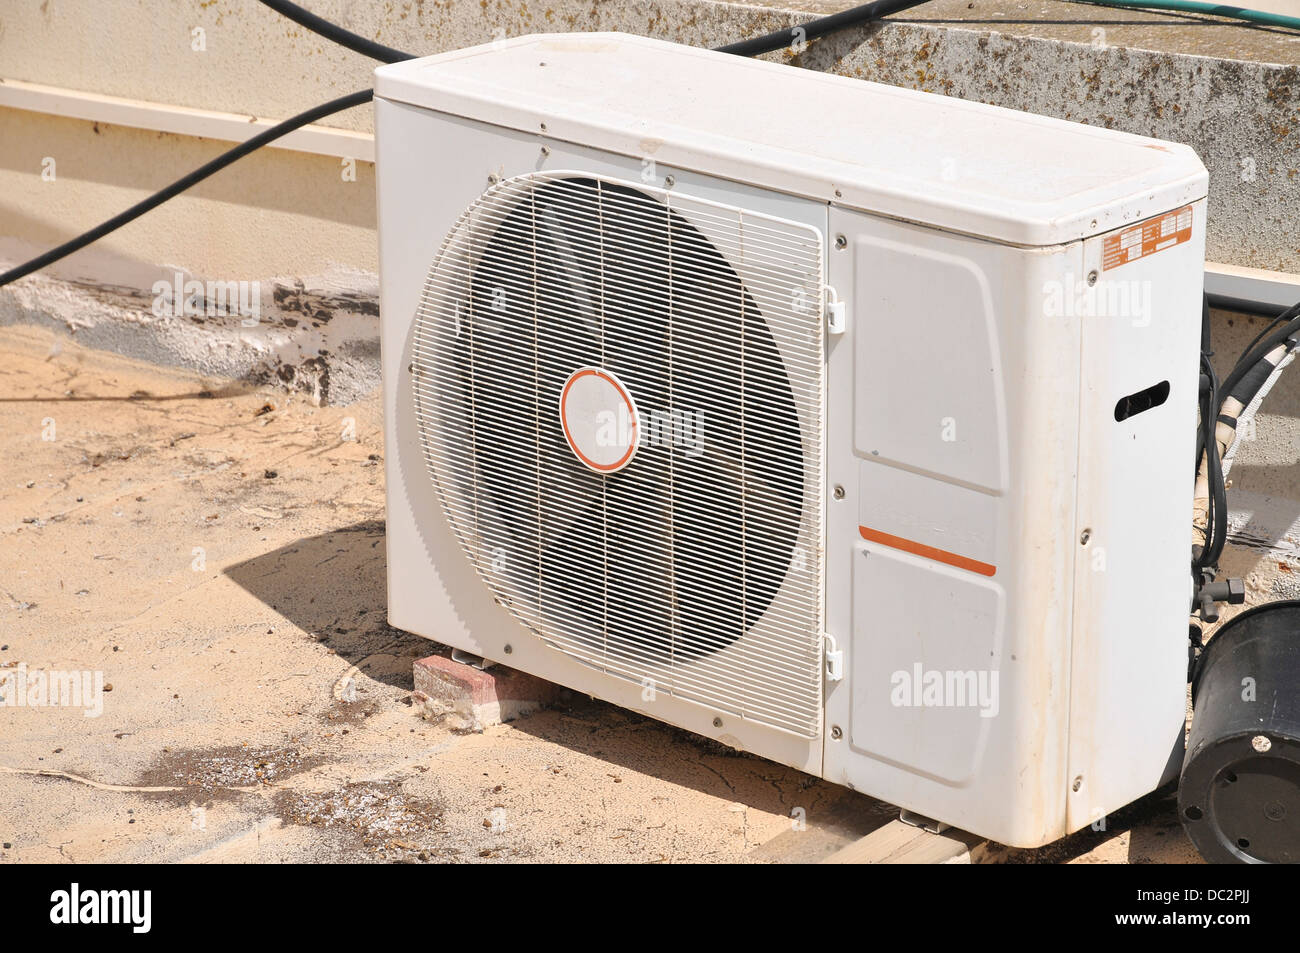 Air Conditioner Outer Unit - Stock Image